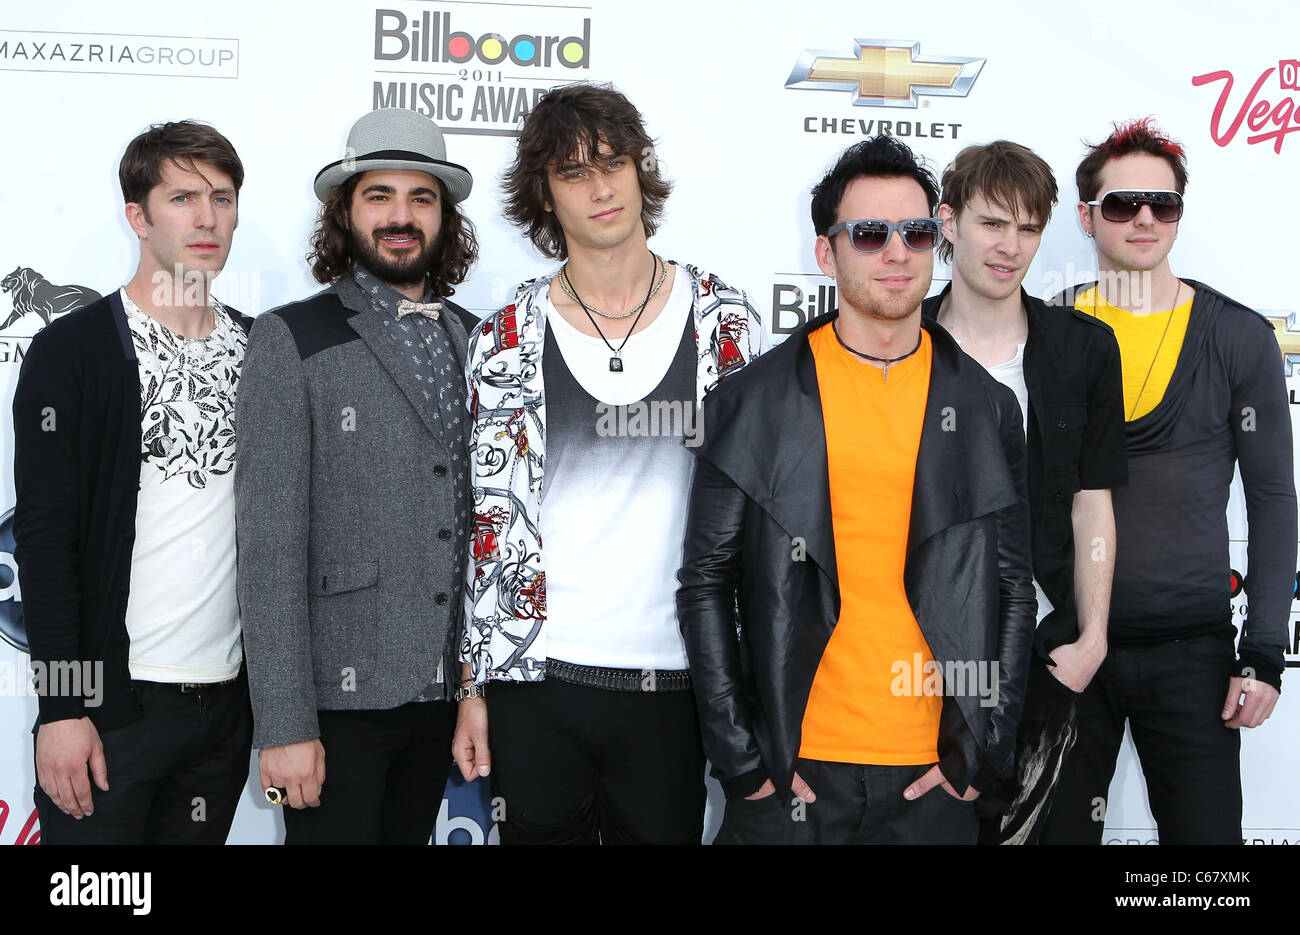 Gentlemen Hall at arrivals for 2011 Billboard Music Awards, MGM Grand Garden Arena, Las Vegas, NV May 22, 2011. - Stock Image